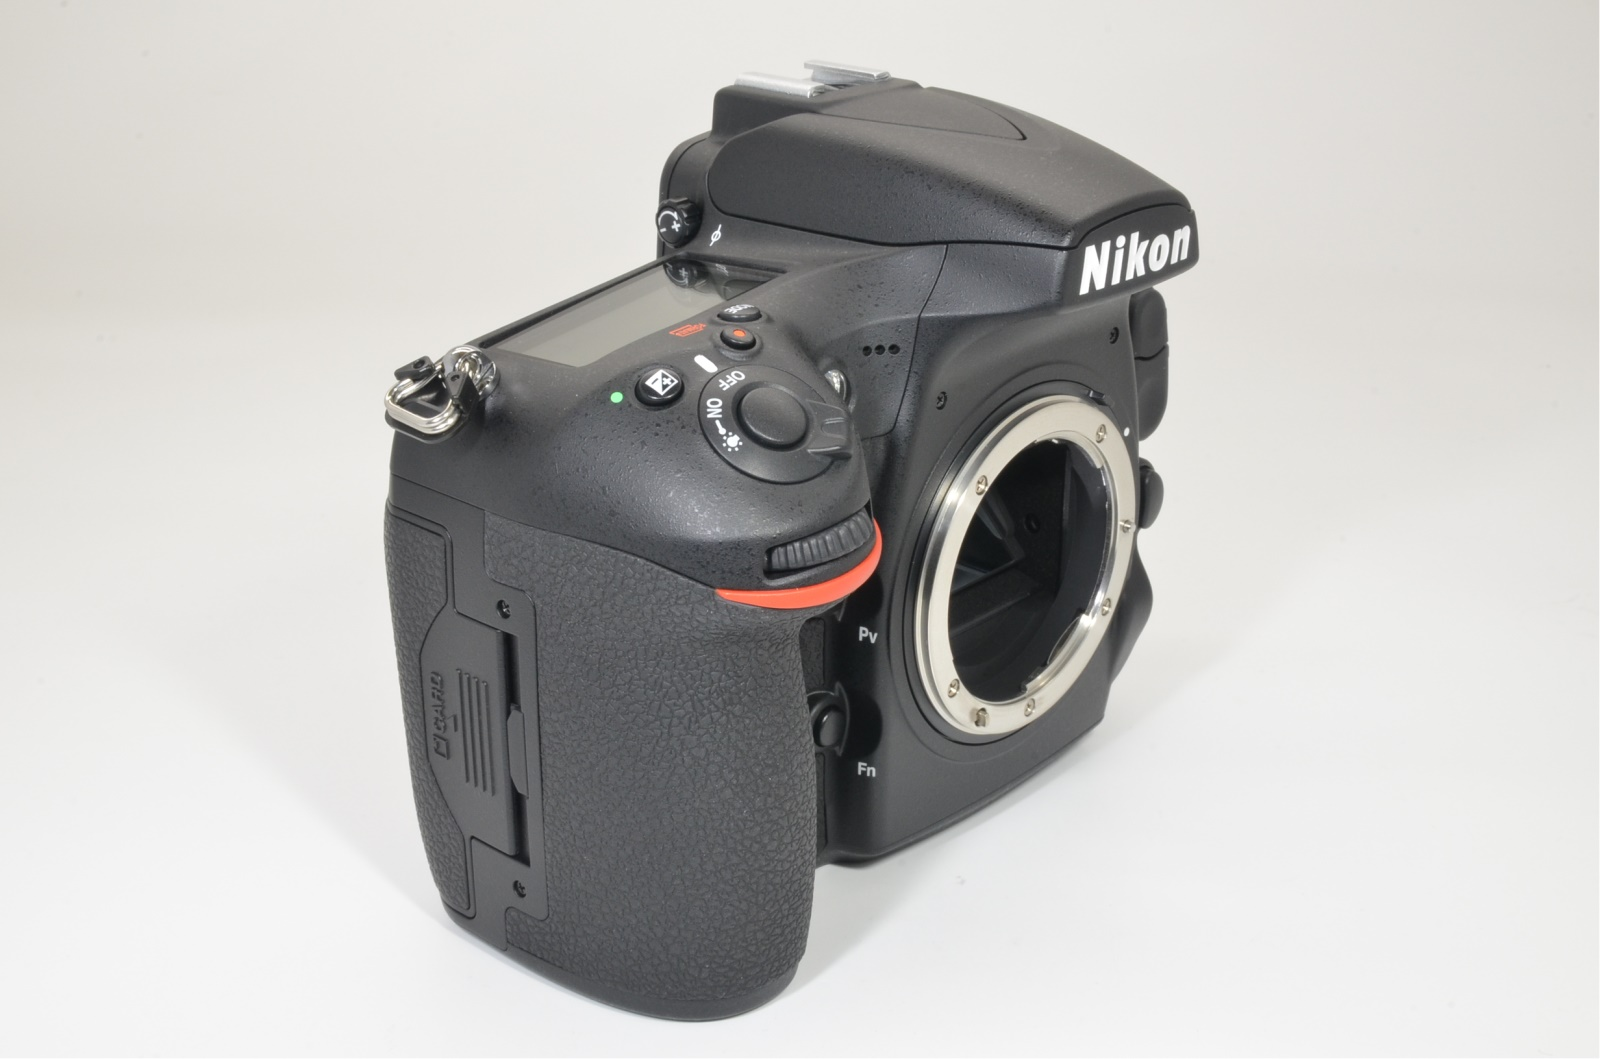 nikon d810 36.3mp dslr camera shutter count 482 barely used from japan